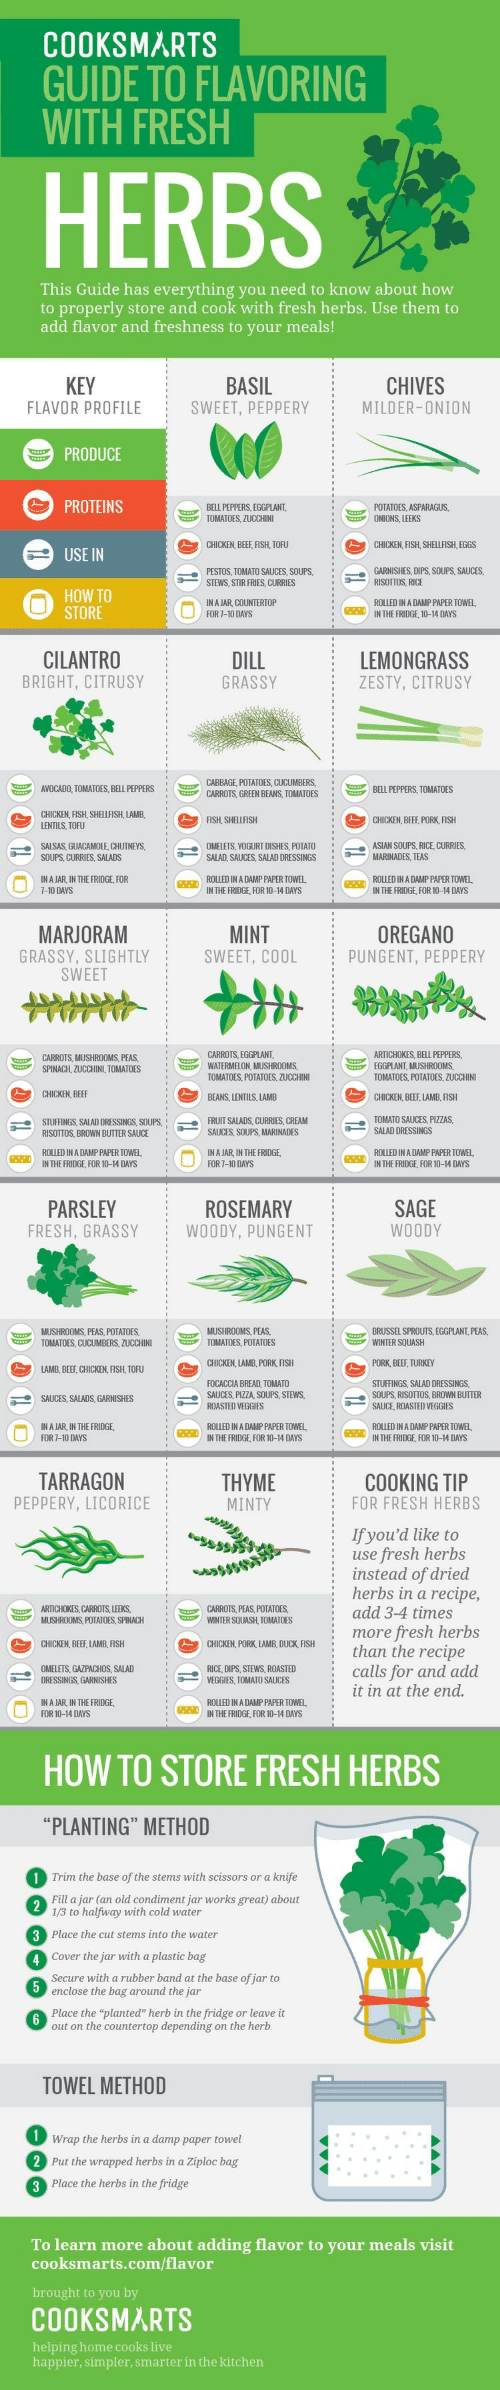 Asian, Beef, and Fresh: COOKSMARTS  GUIDE TO FLAVORING  WITH FRESH  HERBS  This Guide has everything you need to know about how  to properly store and cook with fresh herbs. Use them to  add flavor and freshness to your meals!  BASIL  SWEET, PEPPERY  KEY  CHIVES  FLAVOR PROFILE  MILDER-ONION  PRODUCE  PROTEINS  POTATOES, ASPARAGUS.  ONIONS, LEEKS  BELL PEPPERS, EGGPLANT  TOMATOES, ZUCCHINI  CHICKEN, BEEF, FISH, TOFU  CHICKEN, FISH, SHELLFISH, EGGS  USE IN  GARNISHES, DIPS, SOUPS, SAUCES,  RISOTTOS, RICE  PESTOS, TOMATO SAUCES, SOUPS,  STEWS STIR FRIES, CURRIES  HOW TO  STORE  IN A JAR, COUNTERTOP  FOR 7-10 DAYS  ROLLED IN A DAMP PAPER TOWEL  IN THE FRIDGE, 10-14 DAYS  CILANTRO  BRIGHT, CITRUSY  DILL  LEMONGRASS  GRASSY  ZESTY, CITRUSY  CABBAGE, POTATOES, CUCUMBERS  CARROTS, GREEN BEANS, TOMATOES  AVOCADO, TOMATOES, BELL PEPPERS  BELL PEPPERS, TOMATOES  CHICKEN, FISH, SHELLFISH, LAMB  LENTILS, TOFU  FISH, SHELLFISH  CHICKEN, BEEF, PORK, FISH  OMELETS, YOGURT DISHES, POTATO  ASIAN SOUPS, RICE, CURRIES  MARINADES, TEAS  SALSAS, GUACAMOLE, CHUTNEYS,  SOUPS, CURRIES, SALADS  SALAD SAUCES, SALAD DRESSINGS  ROLLED IN A DAMP PAPER TOWEL  IN THE FRIDGE, FOR 10-14 DAYS  ROLLED IN A DAMP PAPER TOWEL  IN THE FRIDGE, FOR 10-14 DAYS  IN A JAR, IN THE FRIDGE, FOR  7-10 DAYS  MINT  SWEET, COOL  OREGANO  PUNGENT, PEPPERY  MARJORAM  GRASSY, SLIGHTLY  SWEET  CARROTS, EGGPLANT  WATERMELON, MUSHROOMS  TOMATOES, POTATOES, ZUCCHINI  ARTICHOKES, BELL PEPPERS,  EGGPLANT, MUSHROOMS  TOMATOES, POTATOES, ZUCCHINI  CARROTS, MUSHROOMS, PEAS  SPINACH, ZUCCHINI, TOMATOES  CHICKEN, BEEF  BEANS LENTILS, LAMB  CHICKEN, BEEF, LAMB, FISH  TOMATO SAUCES, PIZZAS  SALAD DRESSINGS  FRUIT SALADS, CURRIES, CREAM  SAUCES, SOUPS, MARINADES  STUFFINGS, SALAD DRESSINGS, SOUPS,  RISOTTOS, BROWN BUTTER SAUCE  ROLLED IN A DAMP PAPER TOWEL  IN THE FRIDGE, FOR 10-14 DAYS  IN A JAR, IN THE FRIDGE  FOR 7-10 DAYS  ROLLED IN A DAMP PAPER TOWEL  IN THE FRIDGE FOR 10-14 DAYS  PARSLEY  SAGE  ROSEMARY  WOODY  FRESH, GRASSY  